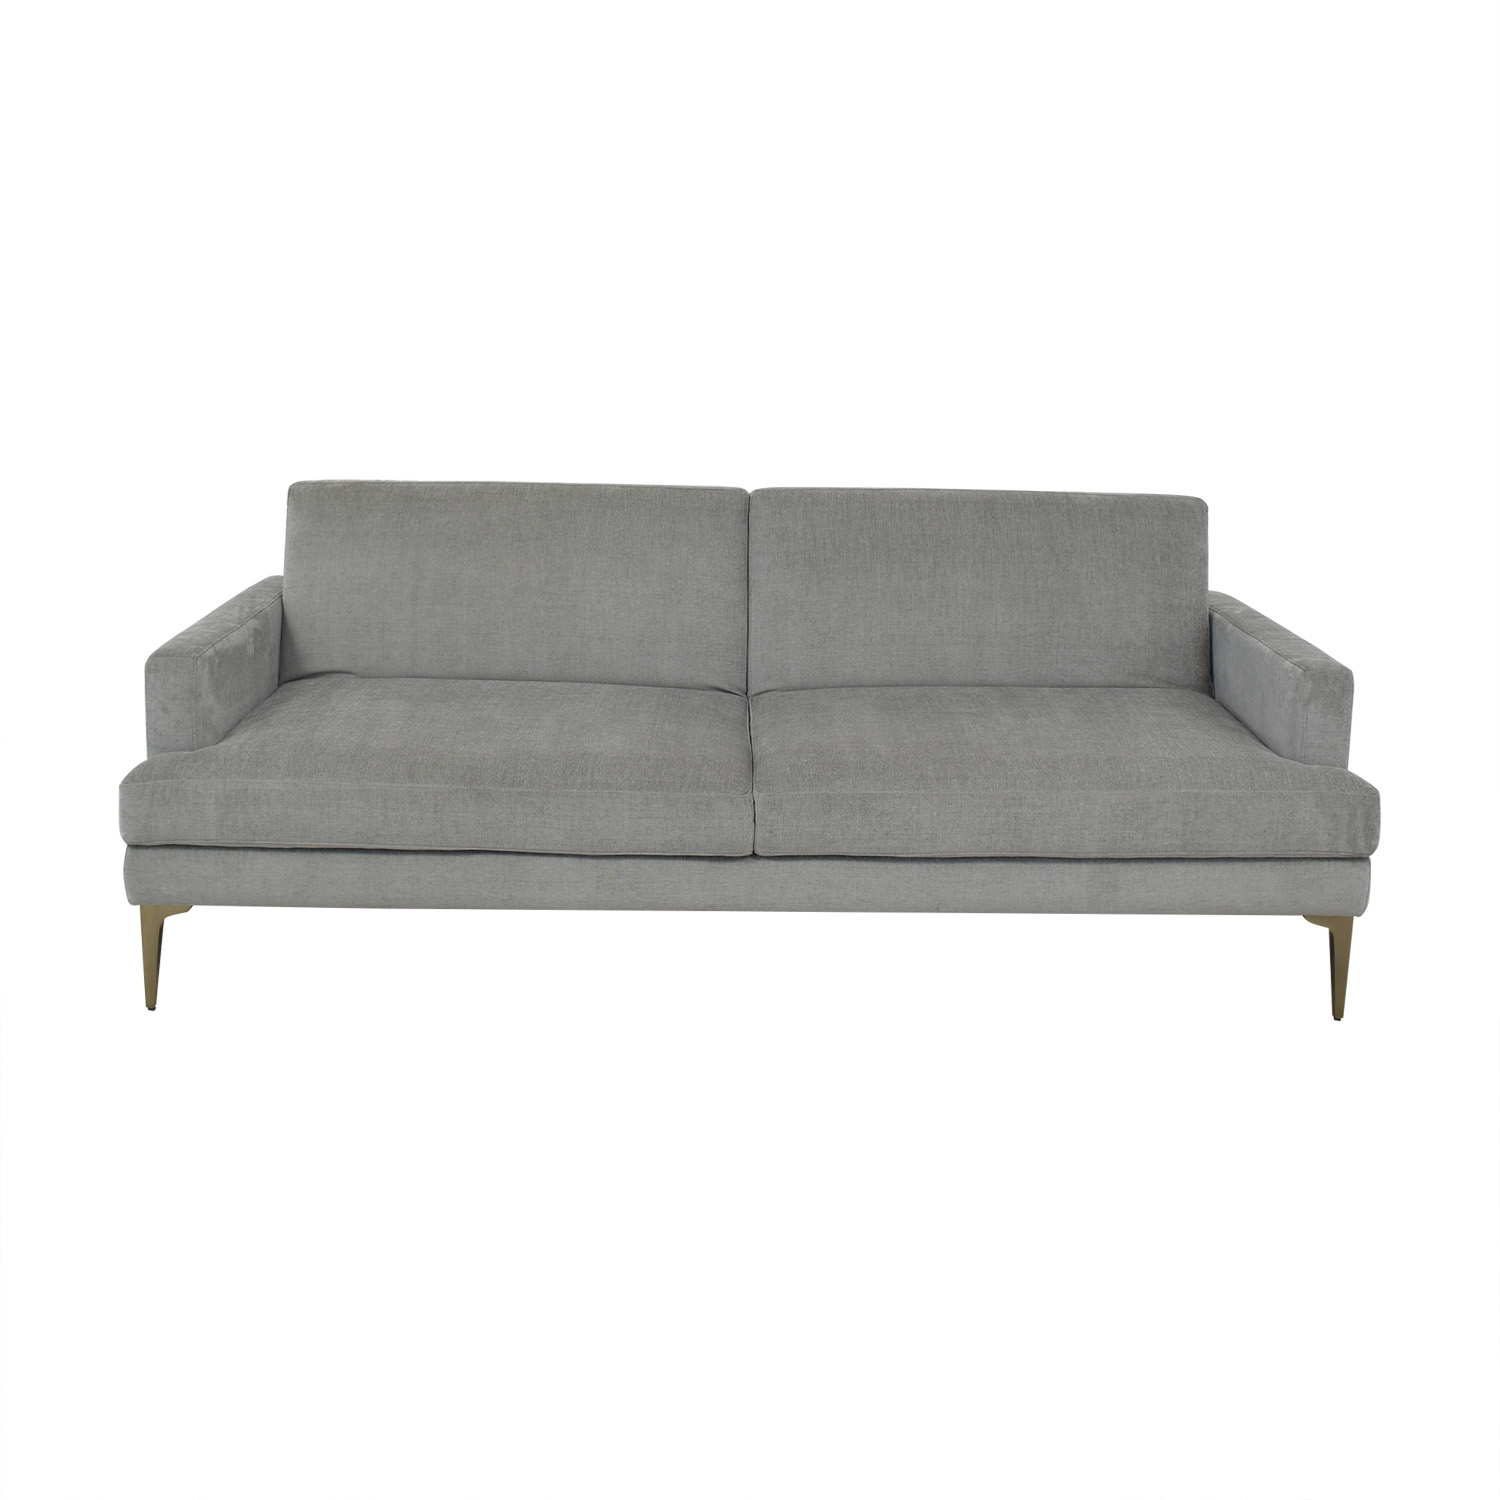 West Elm West Elm Andes Full Futon nj